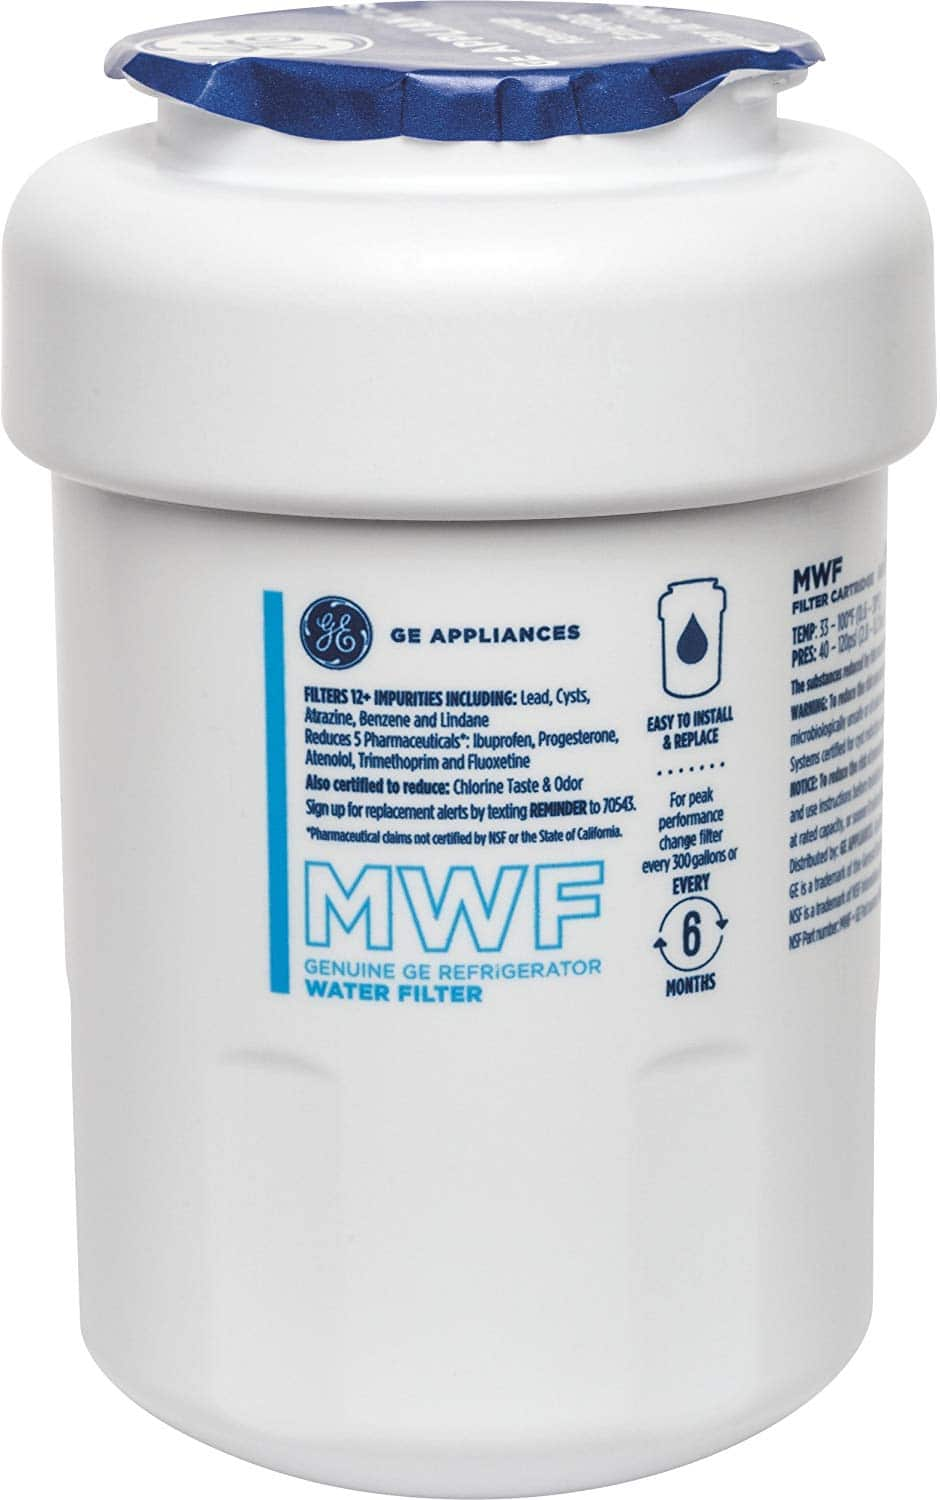 General Electric MWF Water Filter